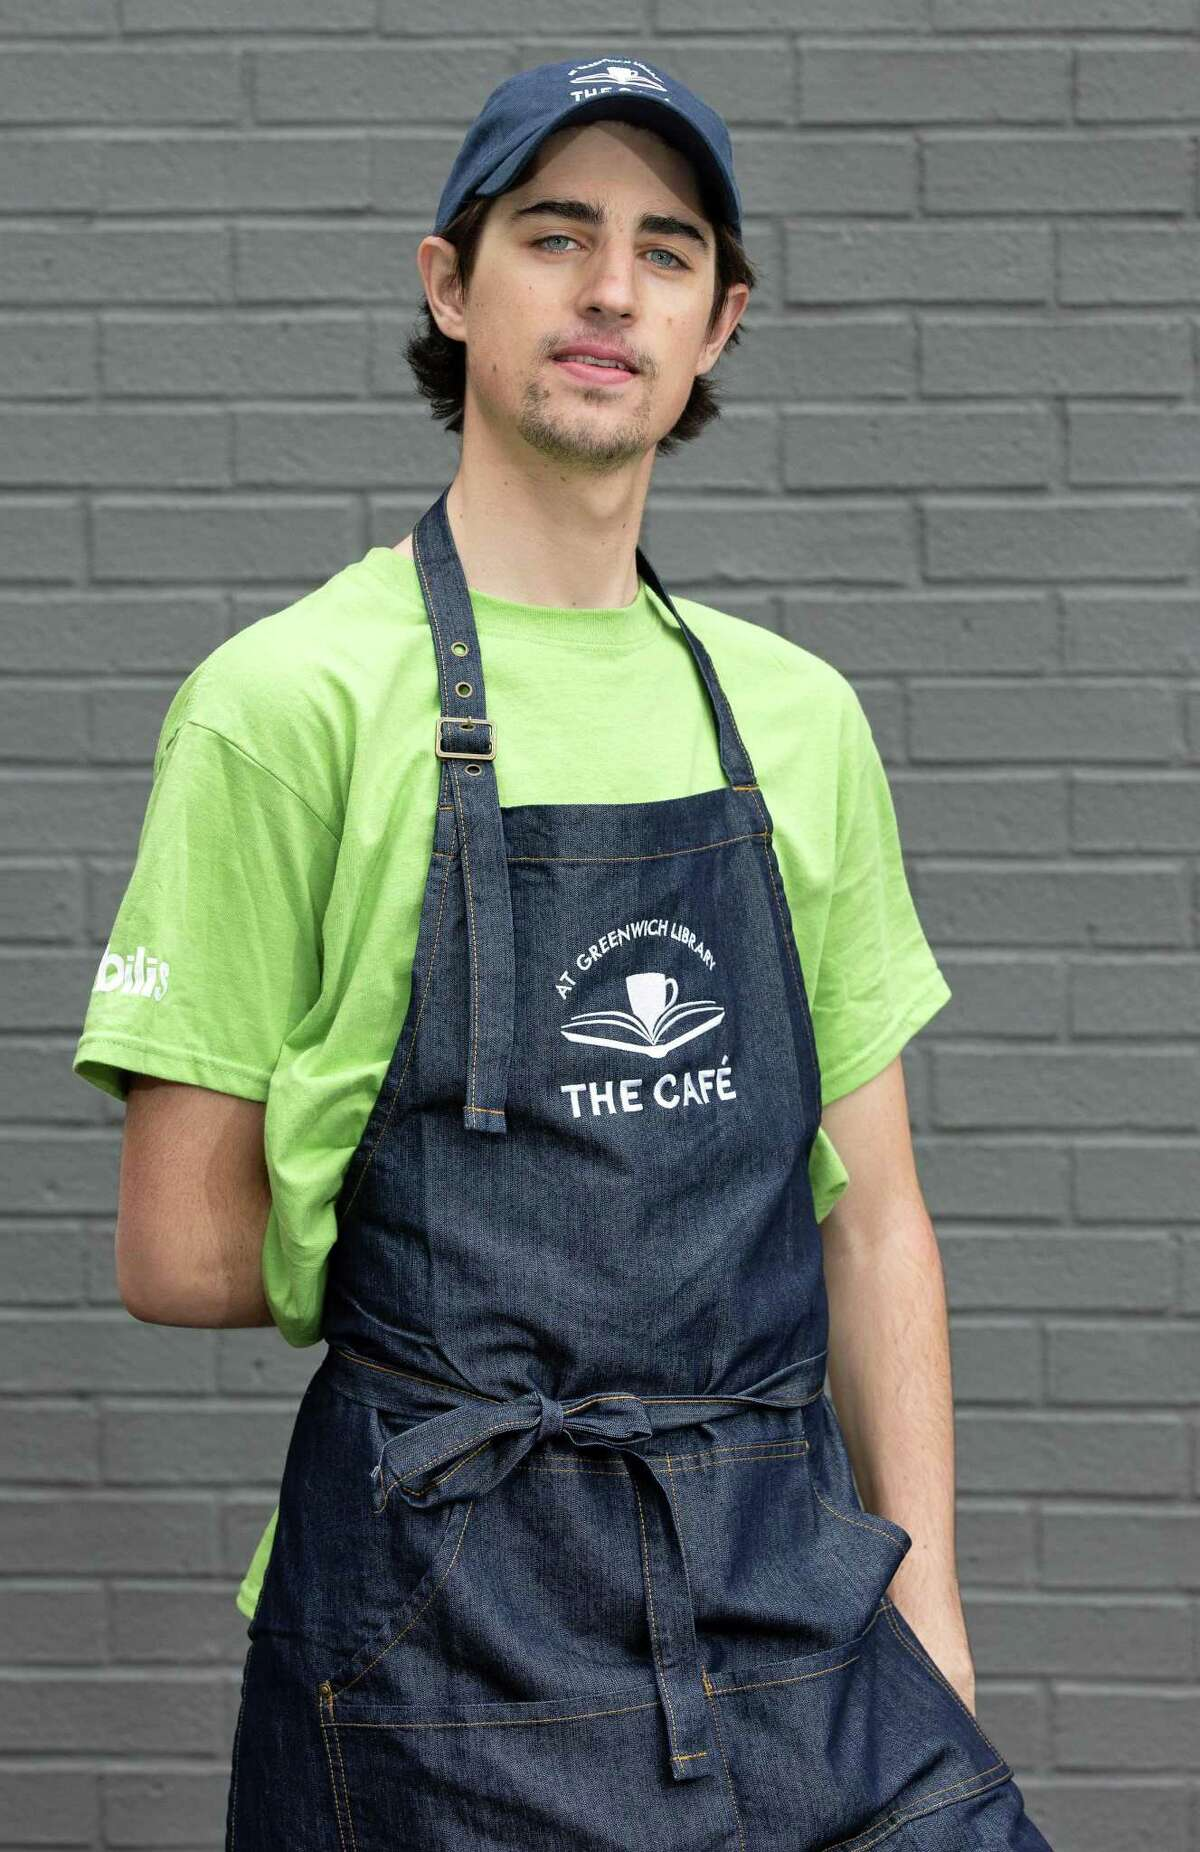 Harrison Peloso, 24, will be one of nine people with disabilities to work in a new employment opportunity at the Greenwich Library Cafe once it opens in November.